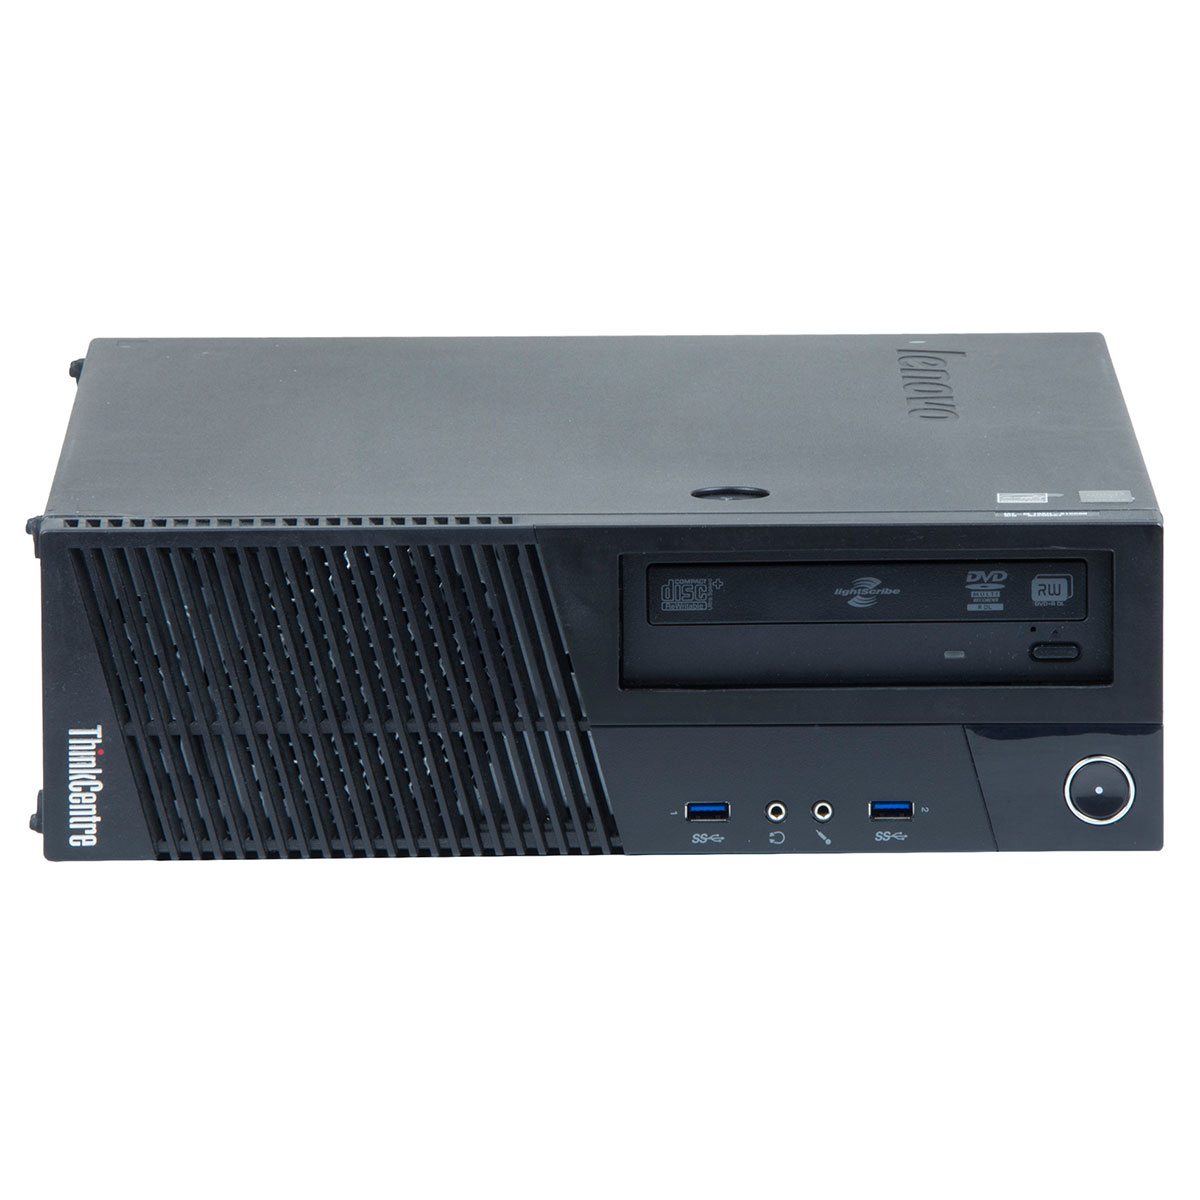 Lenovo ThinkCentre M83 Intel Core i5-4570 3.20GHz  8GB DDR3  256GB SSD  SFF  calculator refurbished